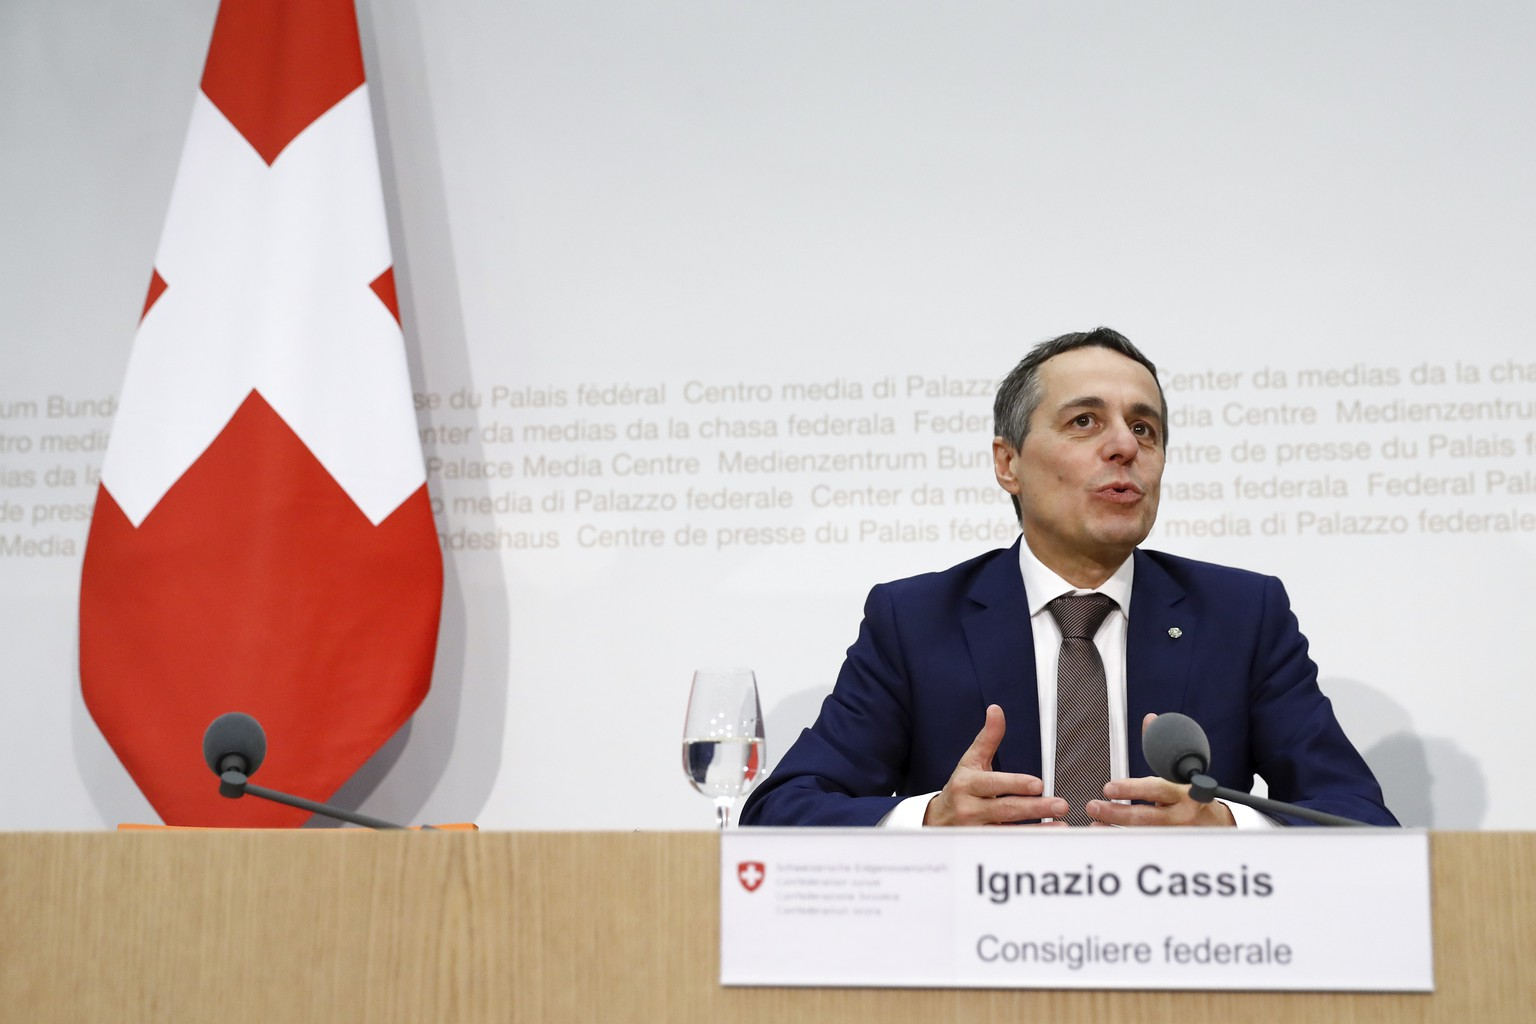 Der neugewaehlte Bundesrat Ignazio Cassis spricht waehrend einer Medienkonferenz, am Mittwoch, 20. September 2017 in Bern. (KEYSTONE/Peter Klaunzer)